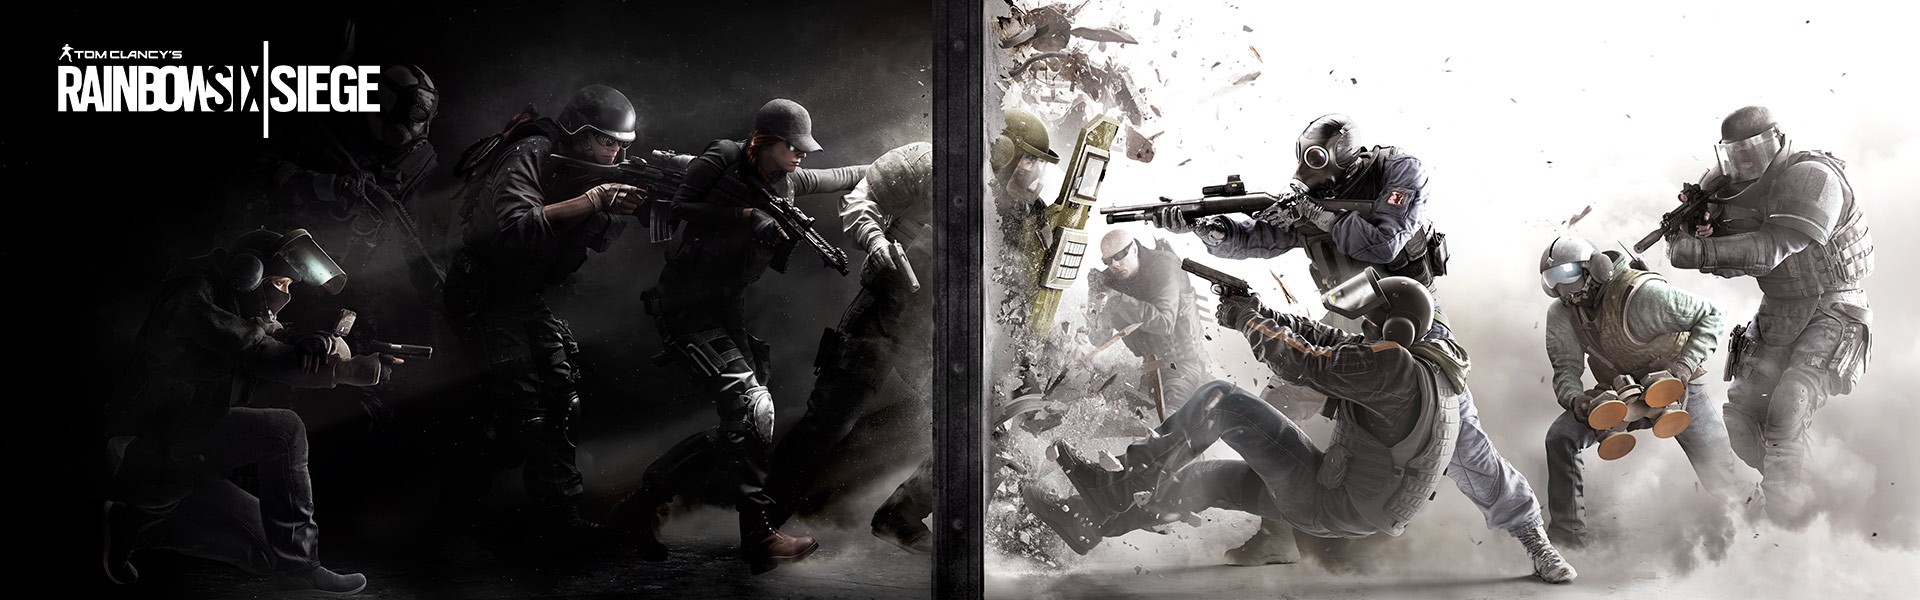 Tom Clancy's Rainbow Six Siege: a group of operators break open a wall with a riot shield and come face to face with another group of operators